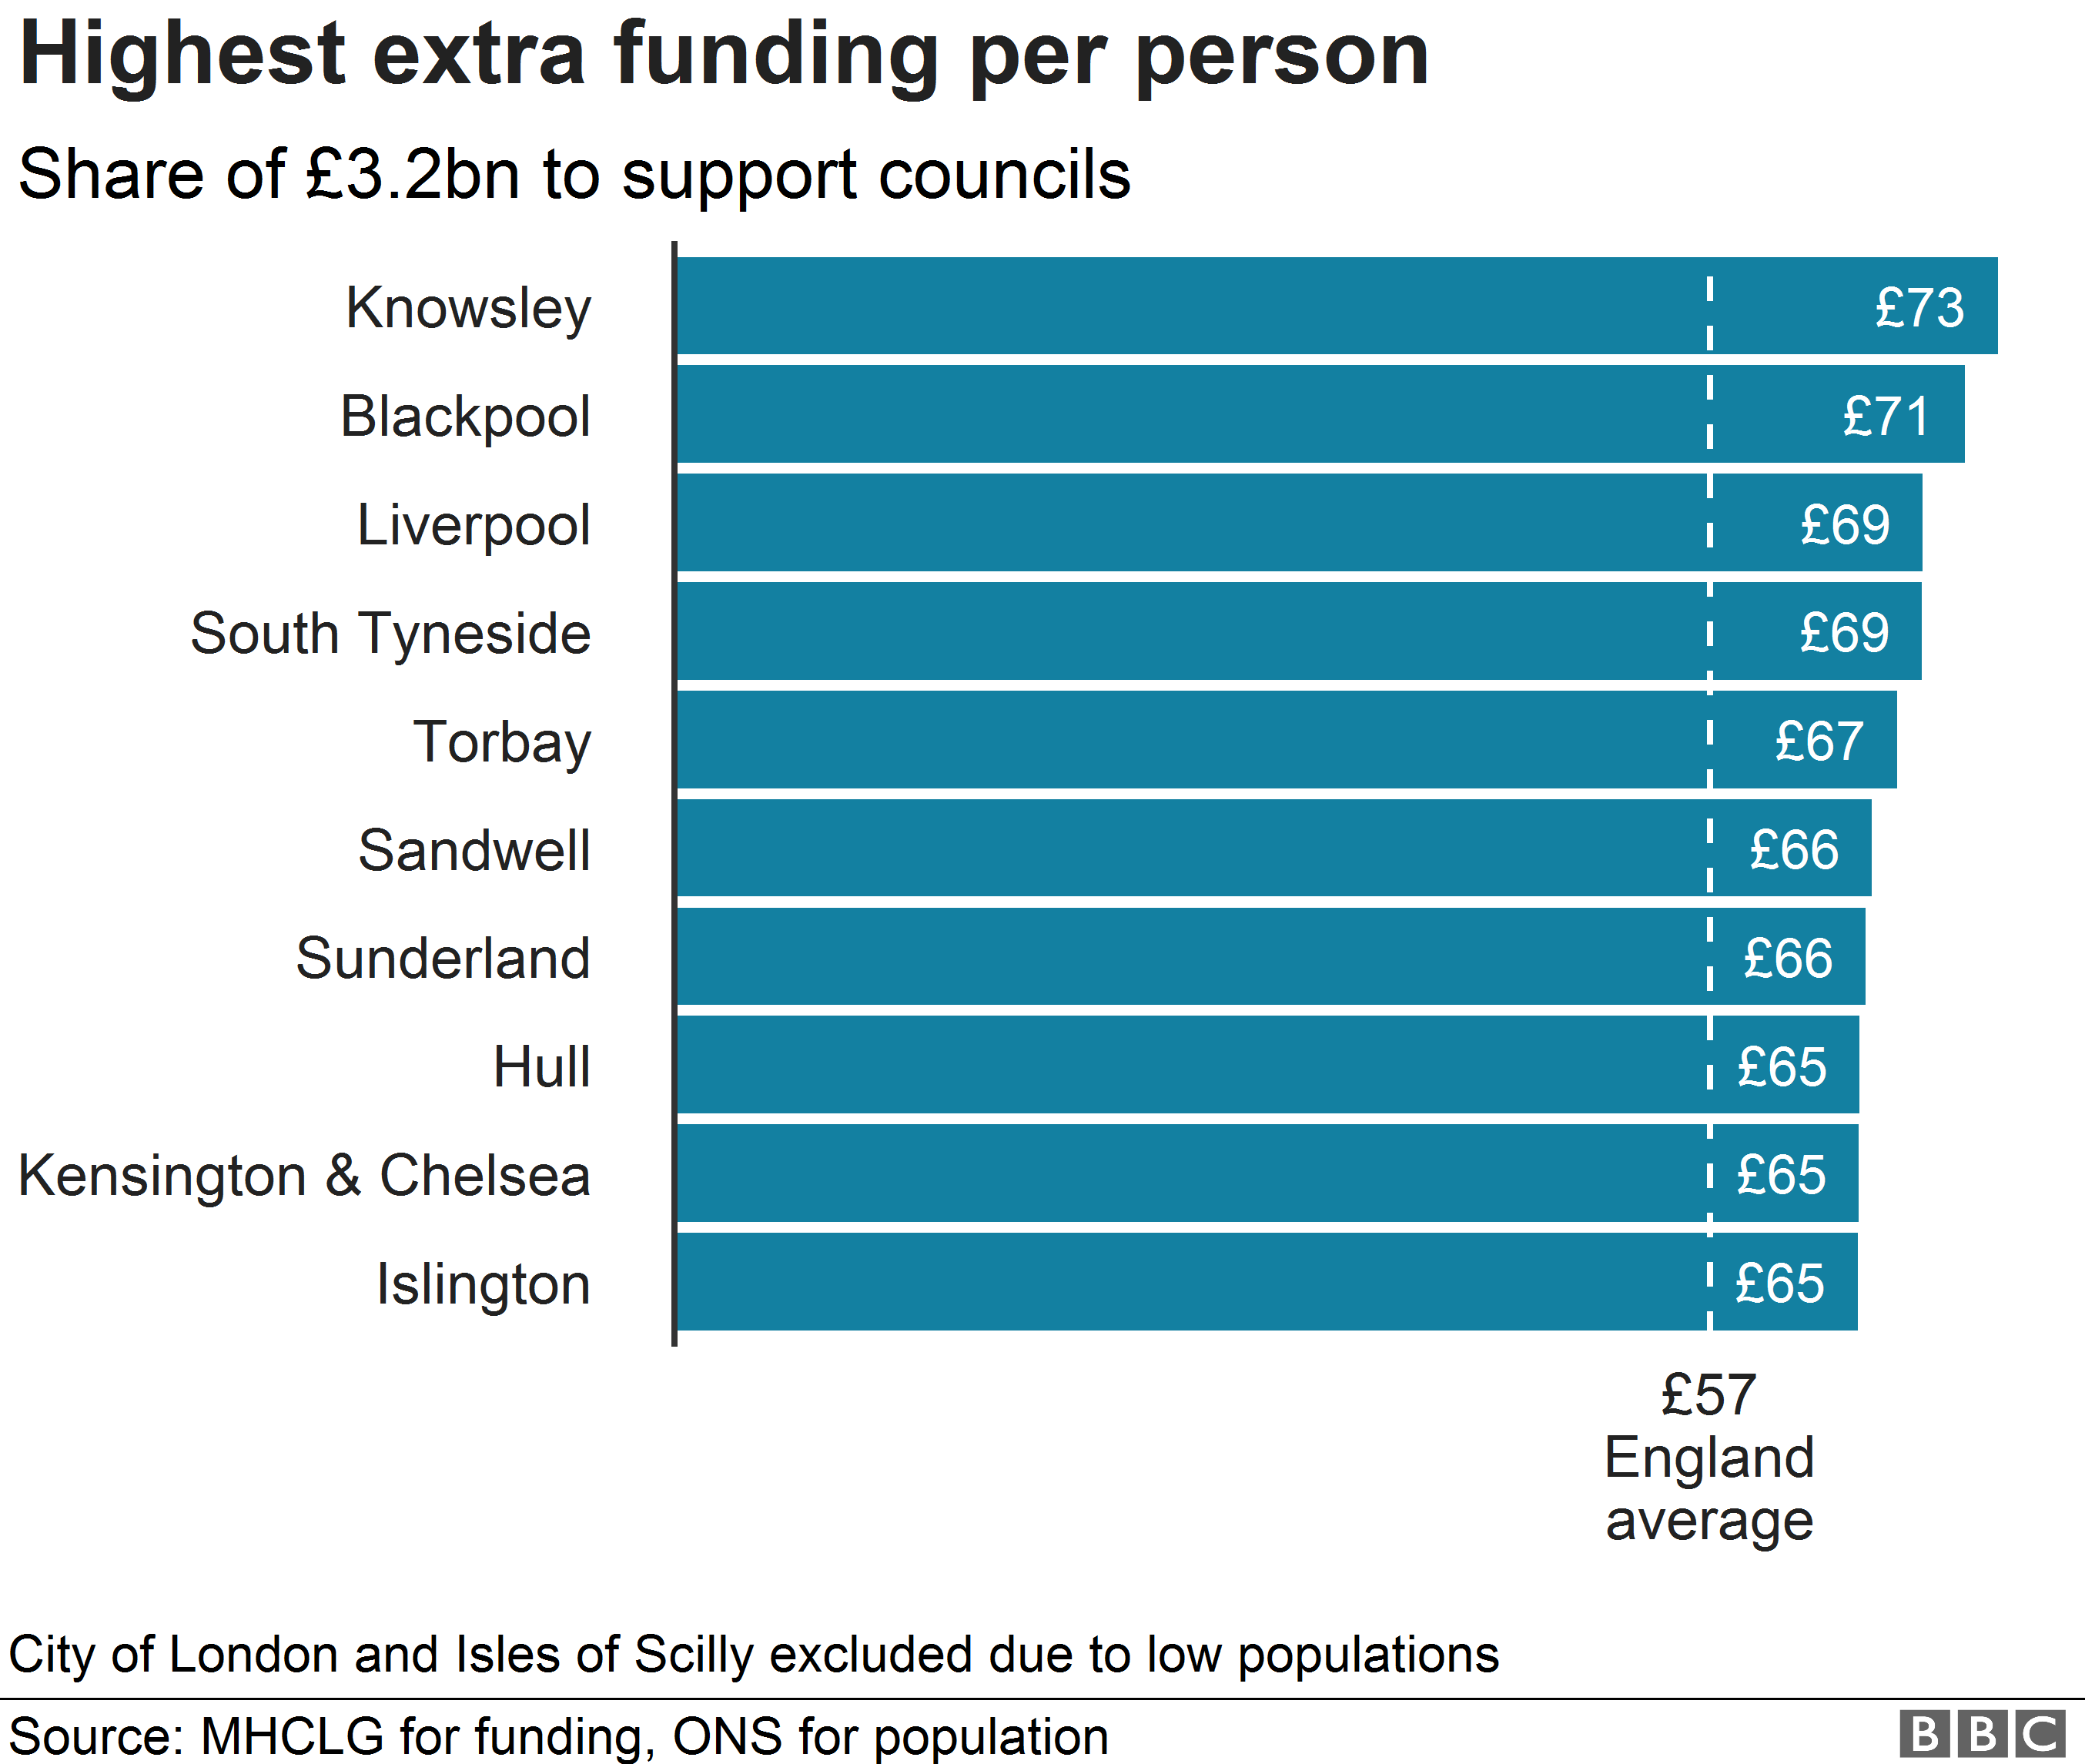 Chart showing highest rates of funding per person